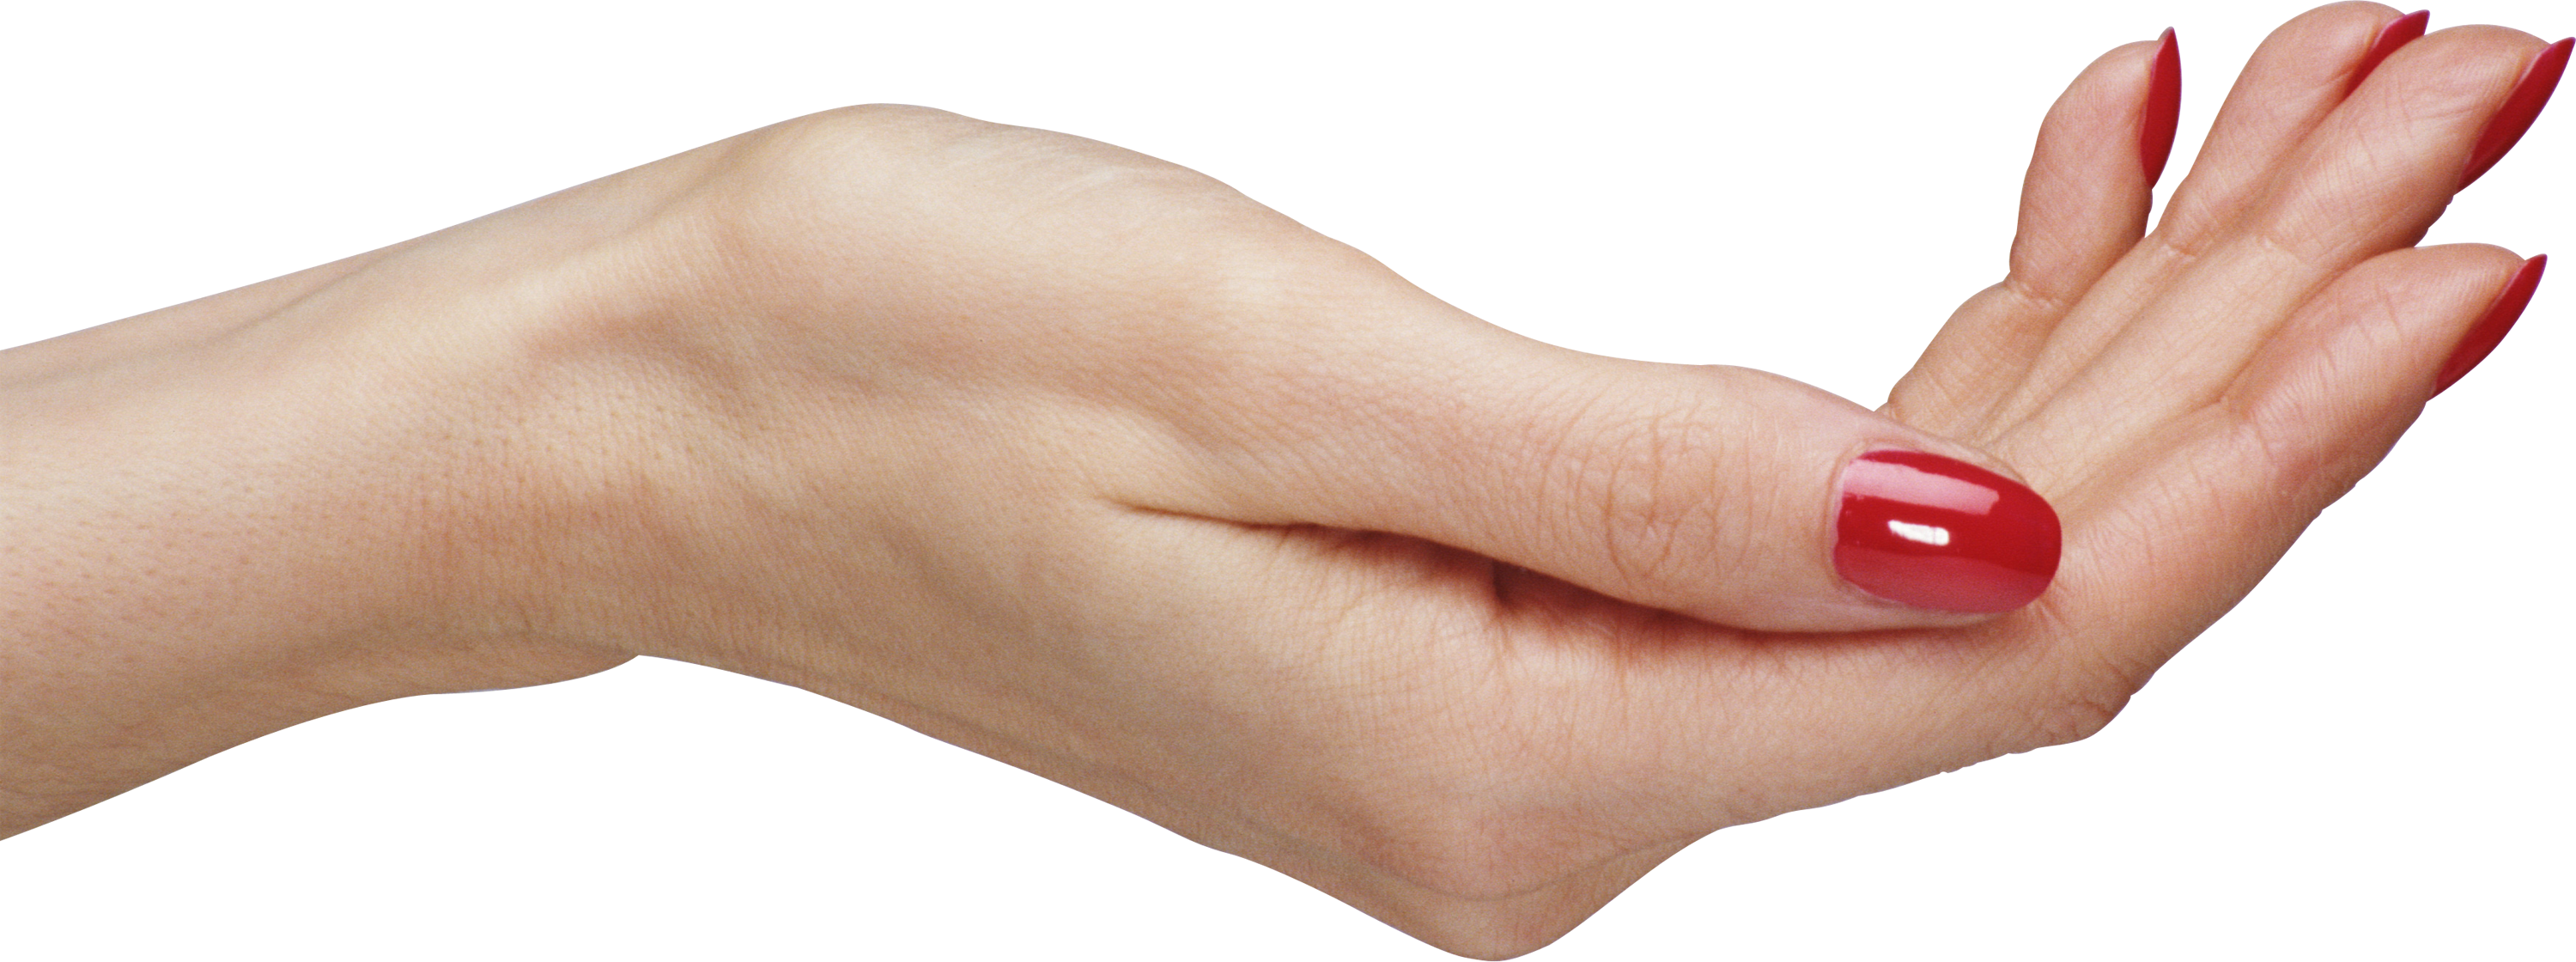 Open palm png. Hands image purepng free